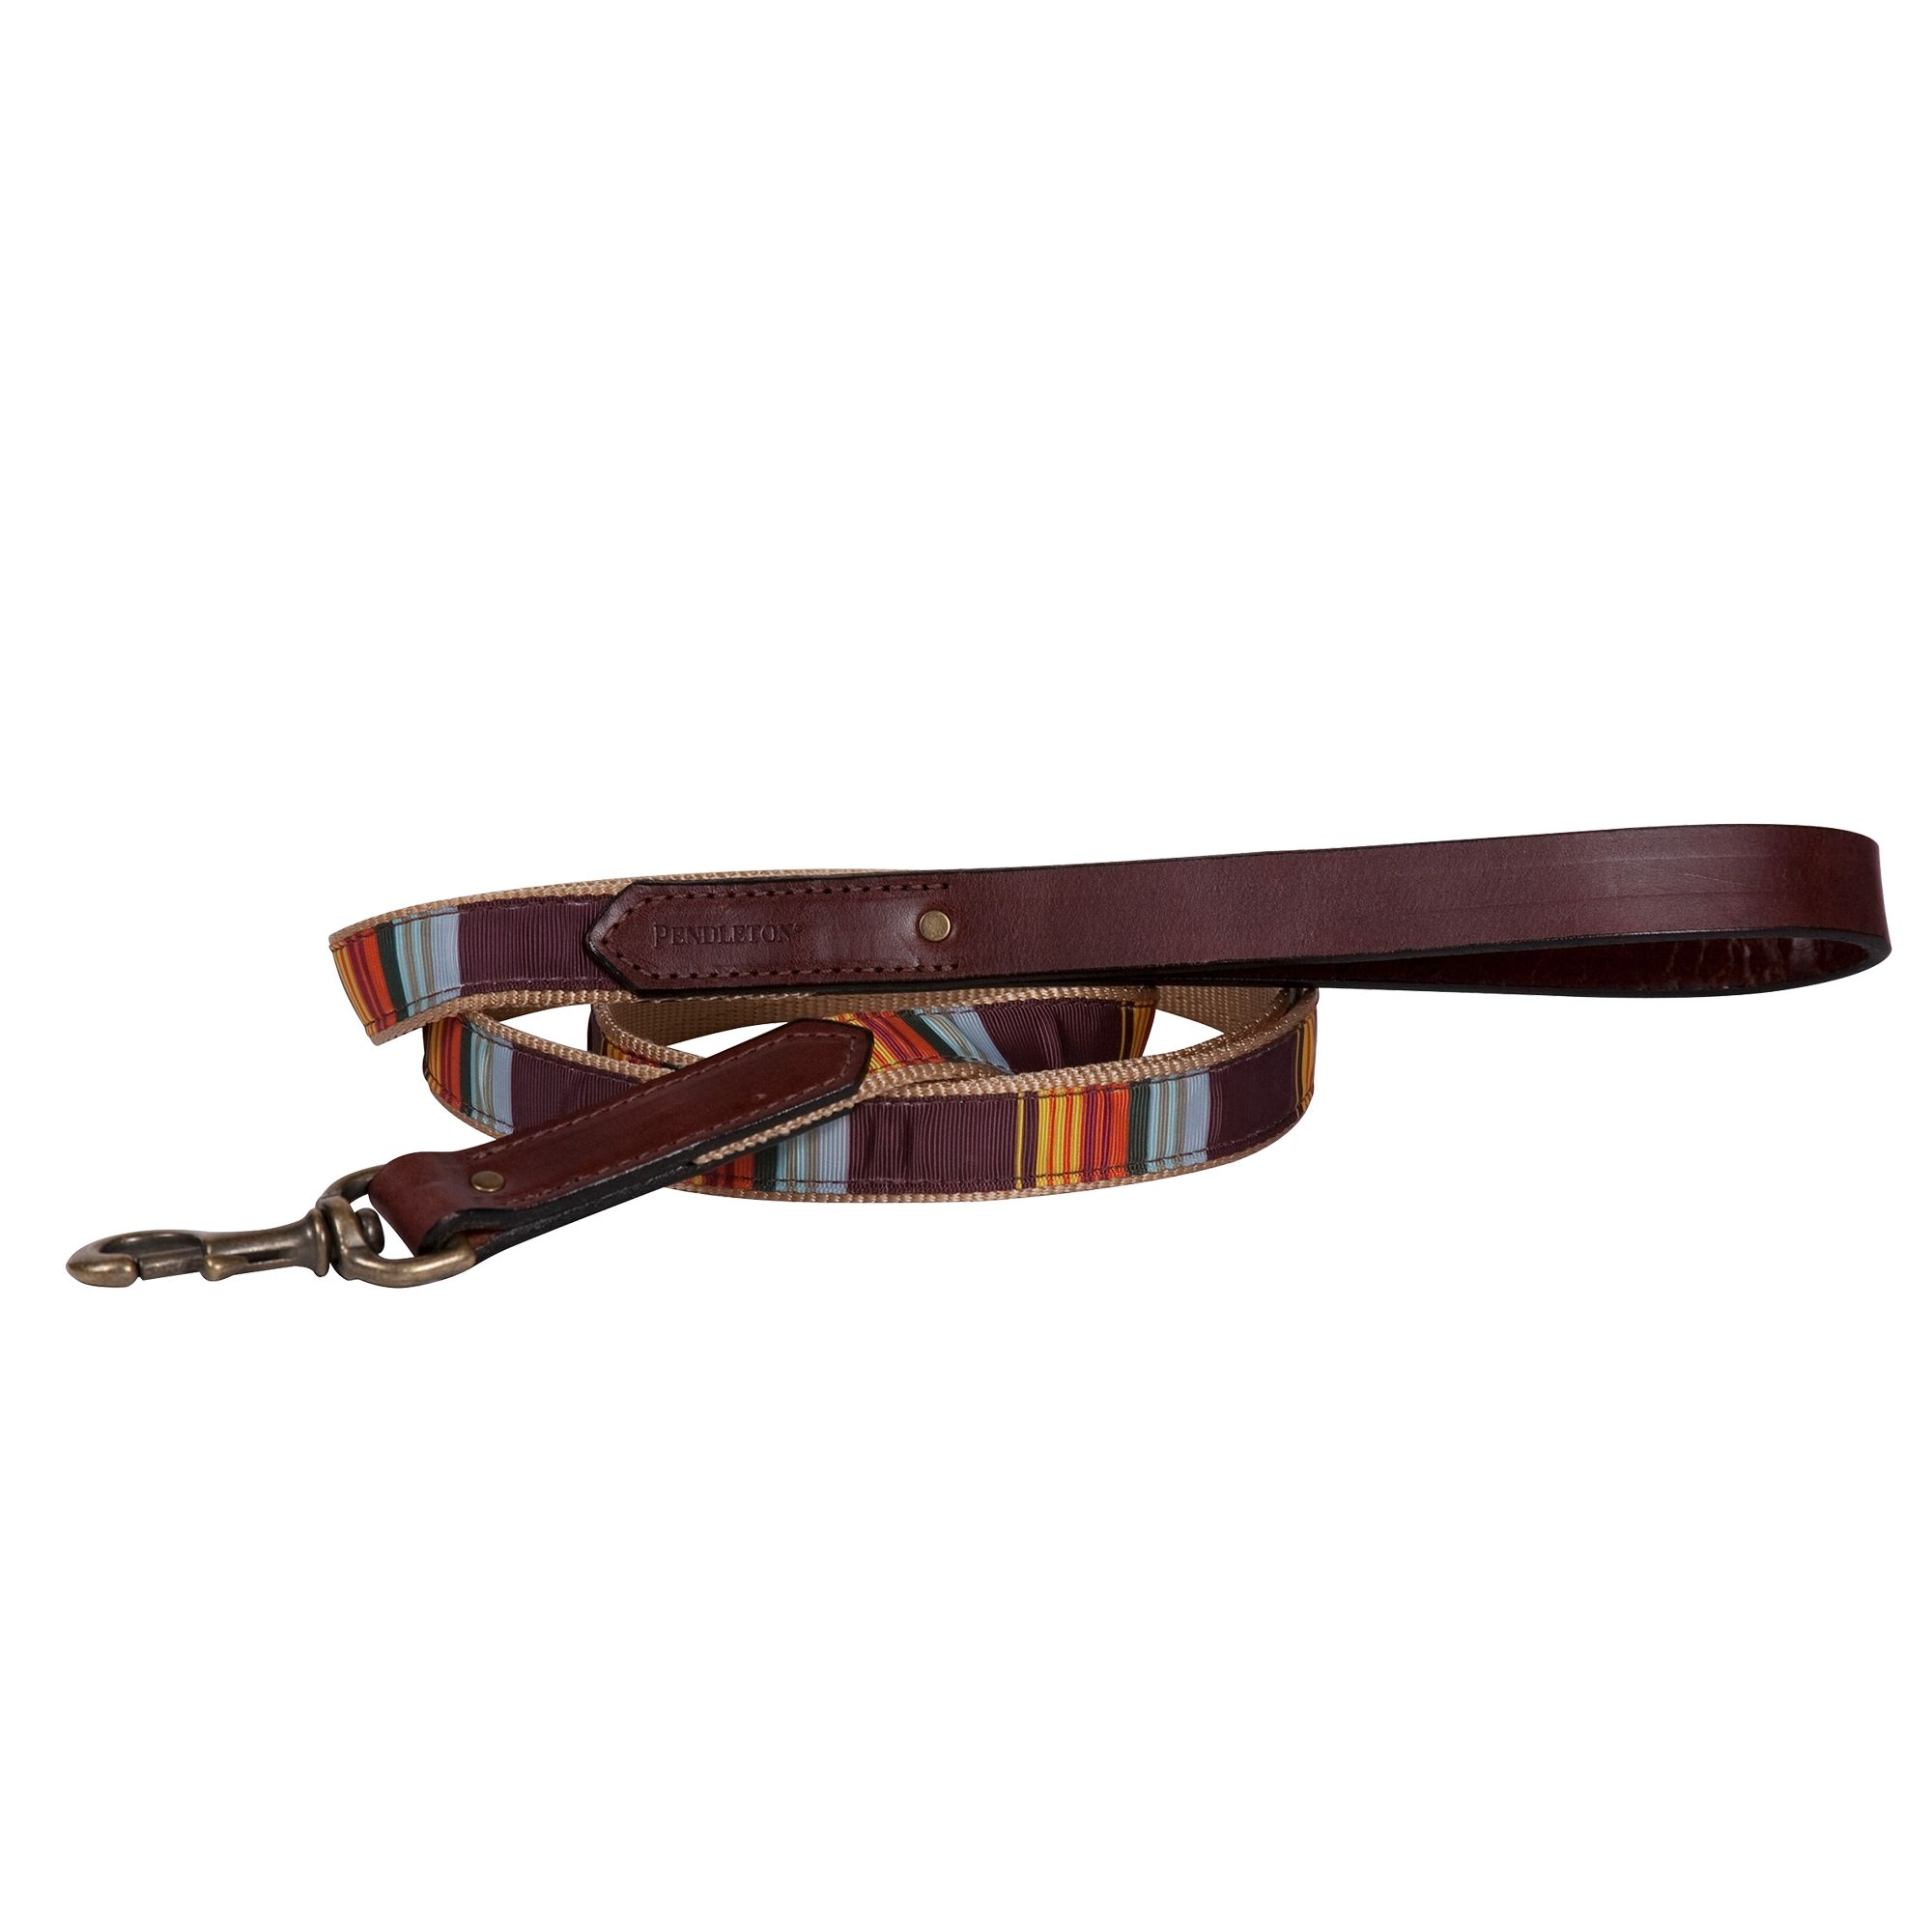 Pendleton National Park Great Smoky Mountain Explorer Dog Leash 5262989